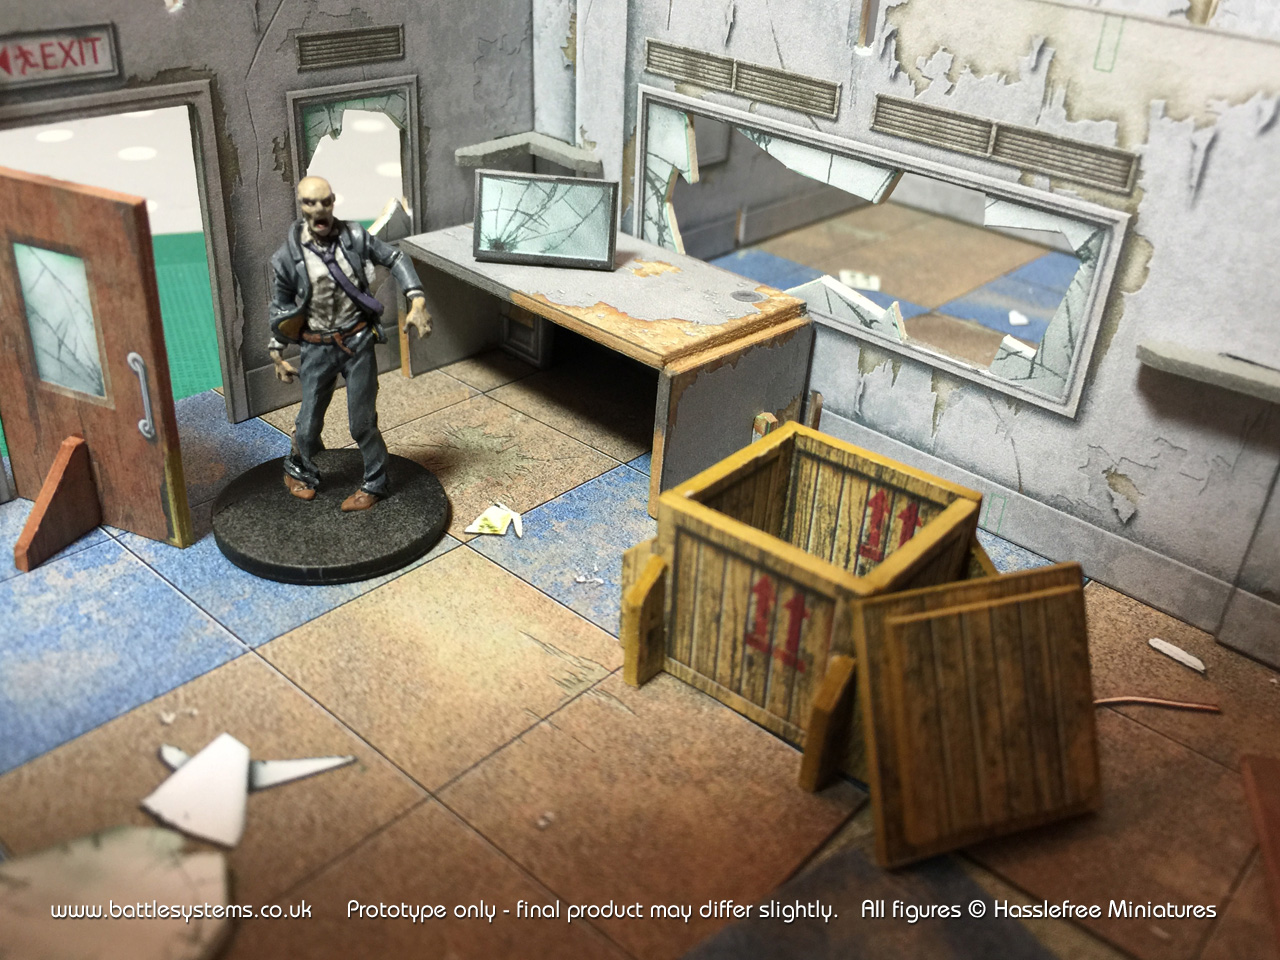 Battle Systems Turn Your Tabletop Into A Post Apocalyptic